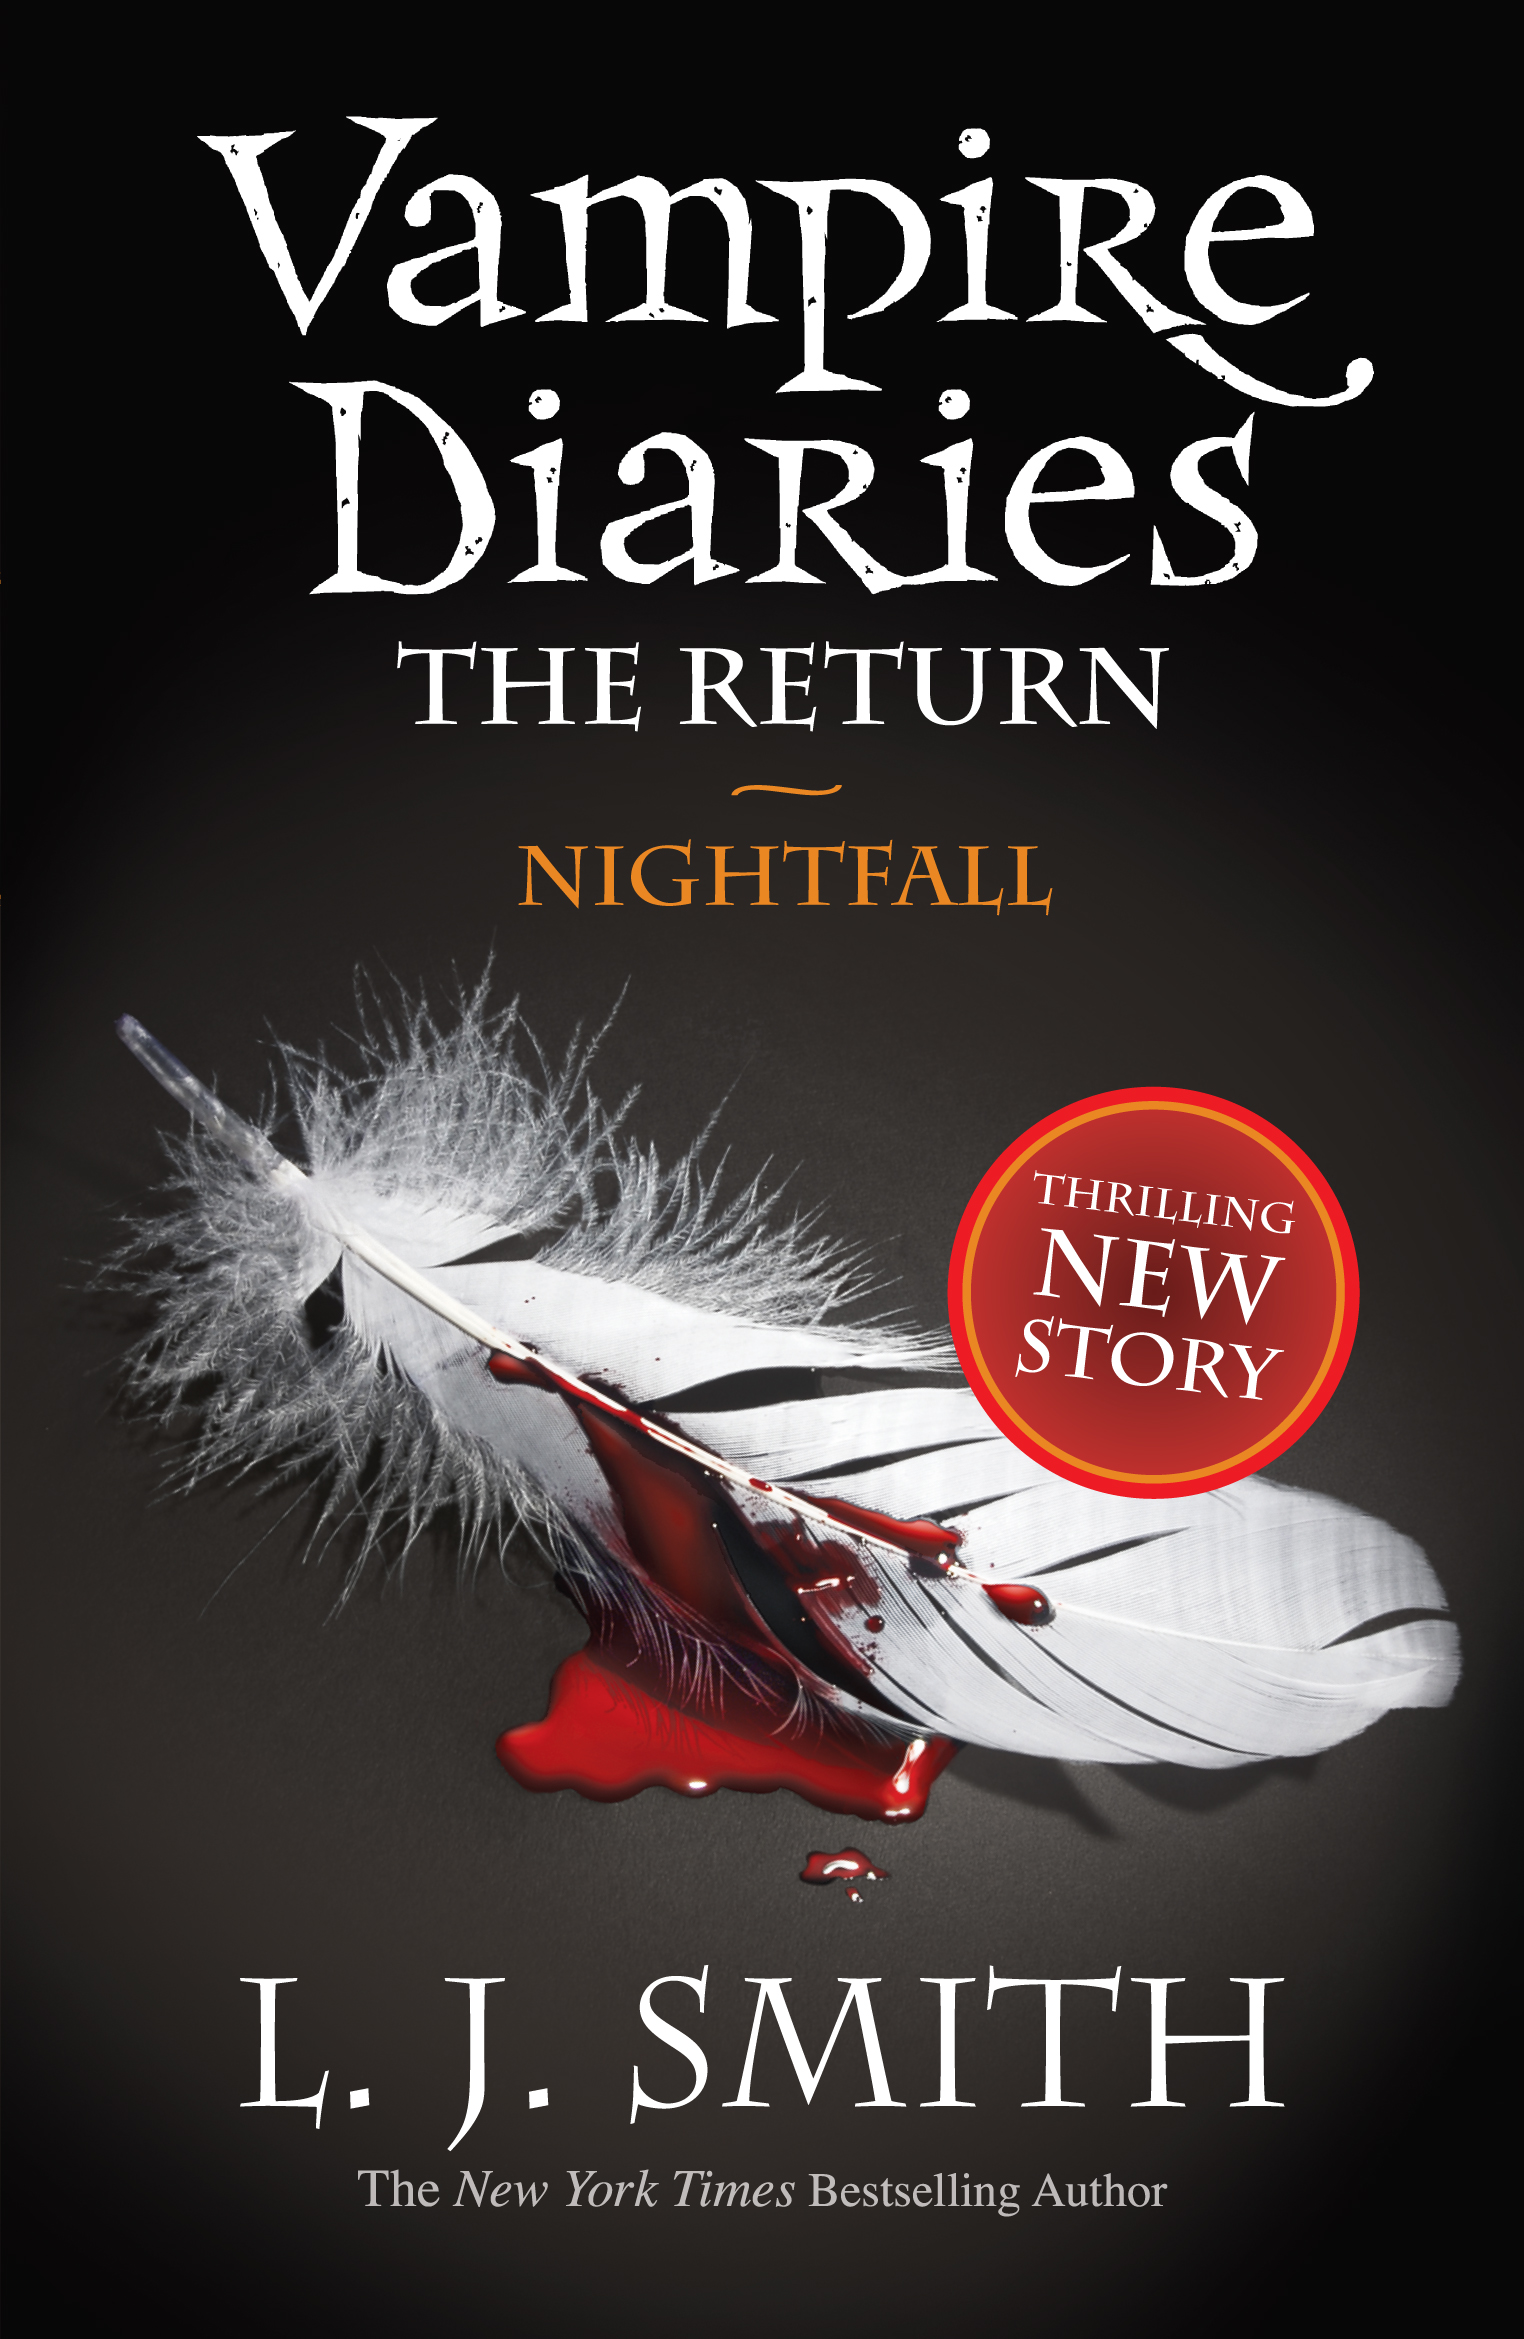 Vampire Diaries 5: The Return: Nightfall